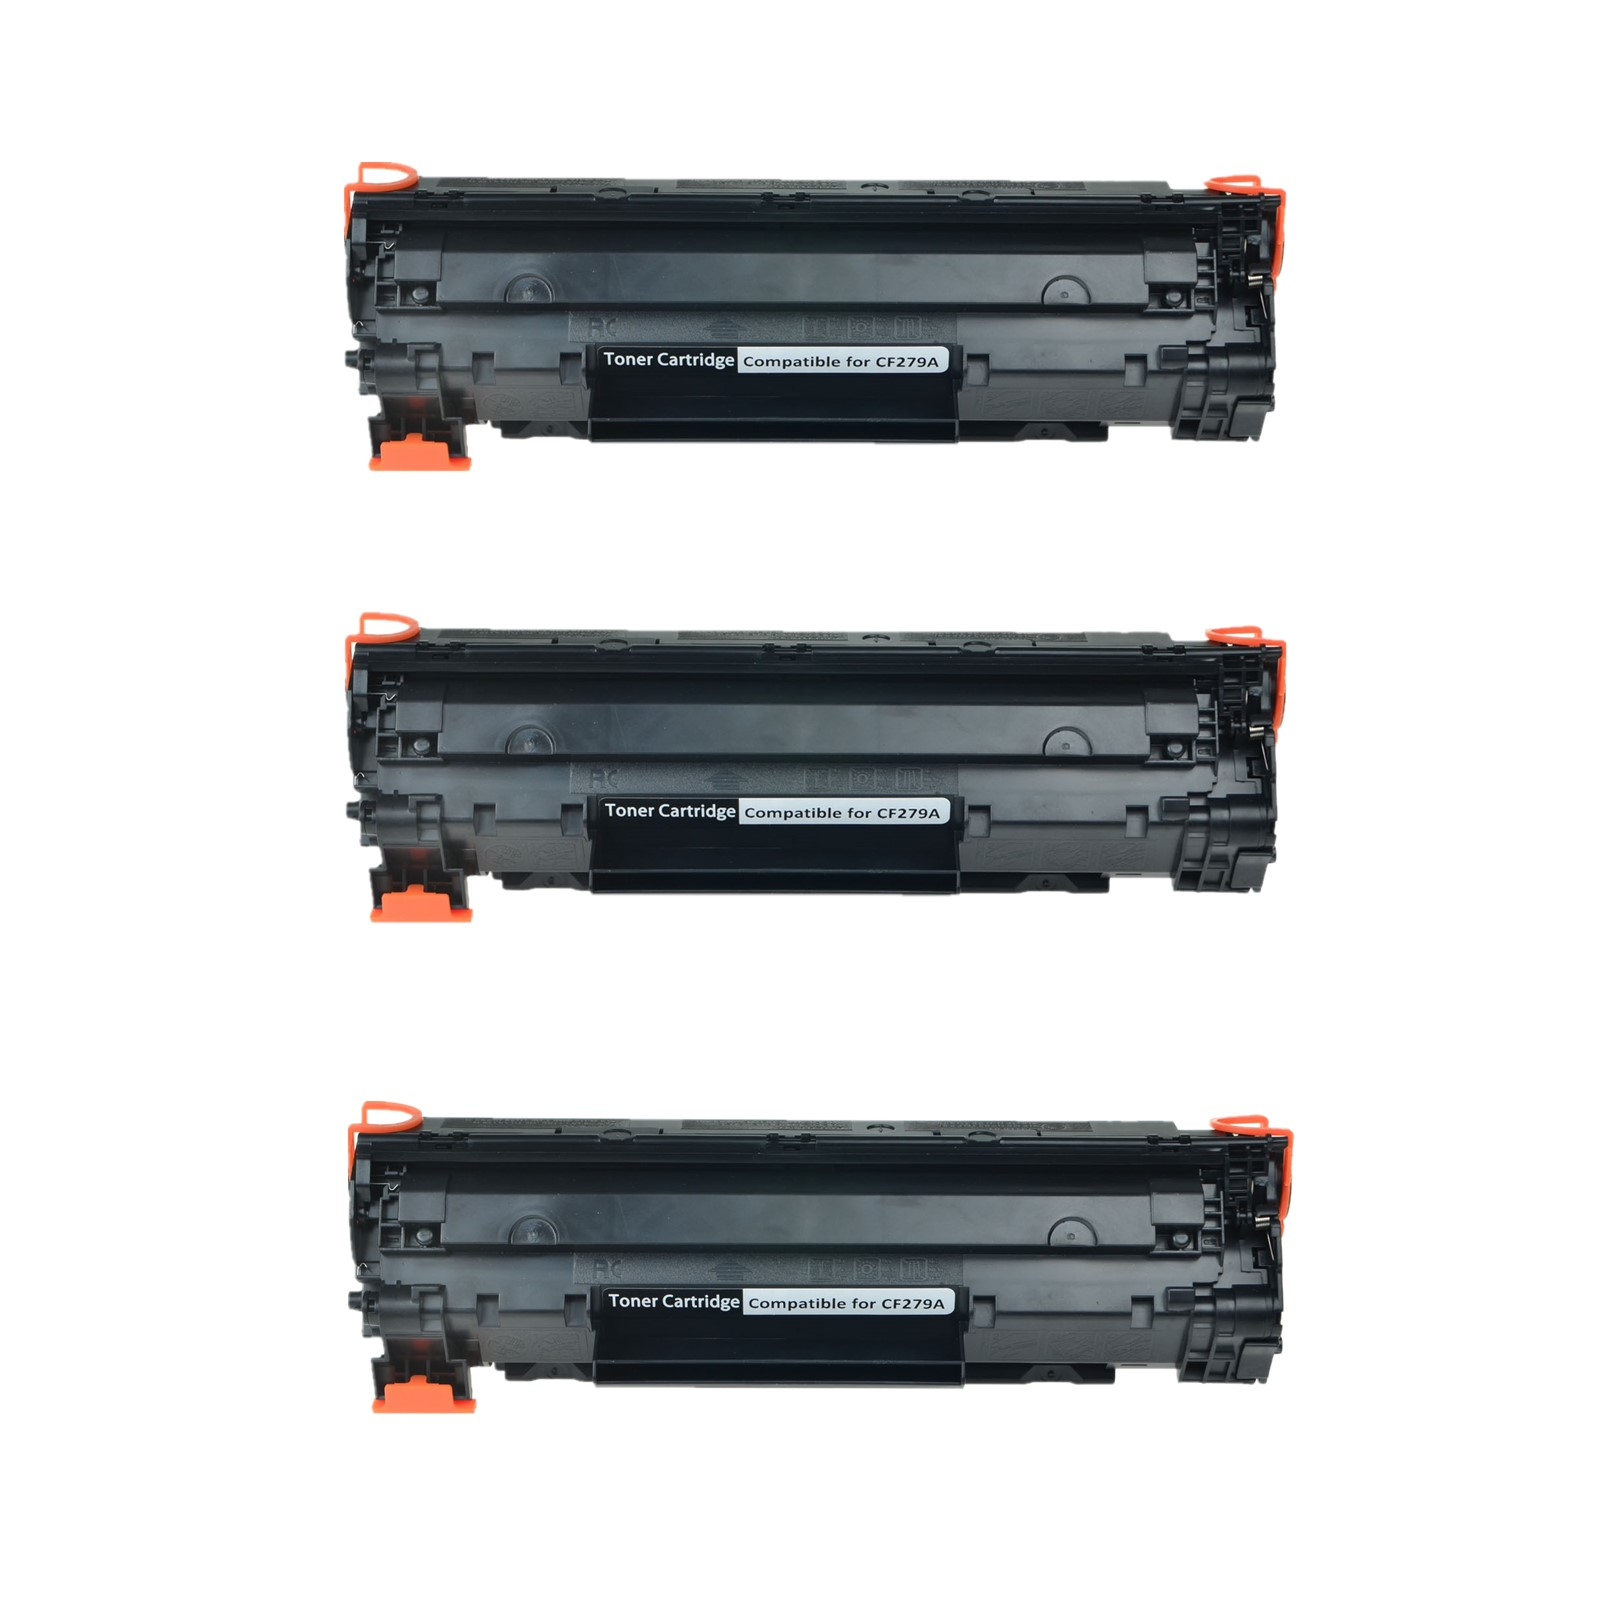 3PK CF279A 79A Black Toner Cartridge For HP LaserJet Pro MFP M26nw Printer - $27.99